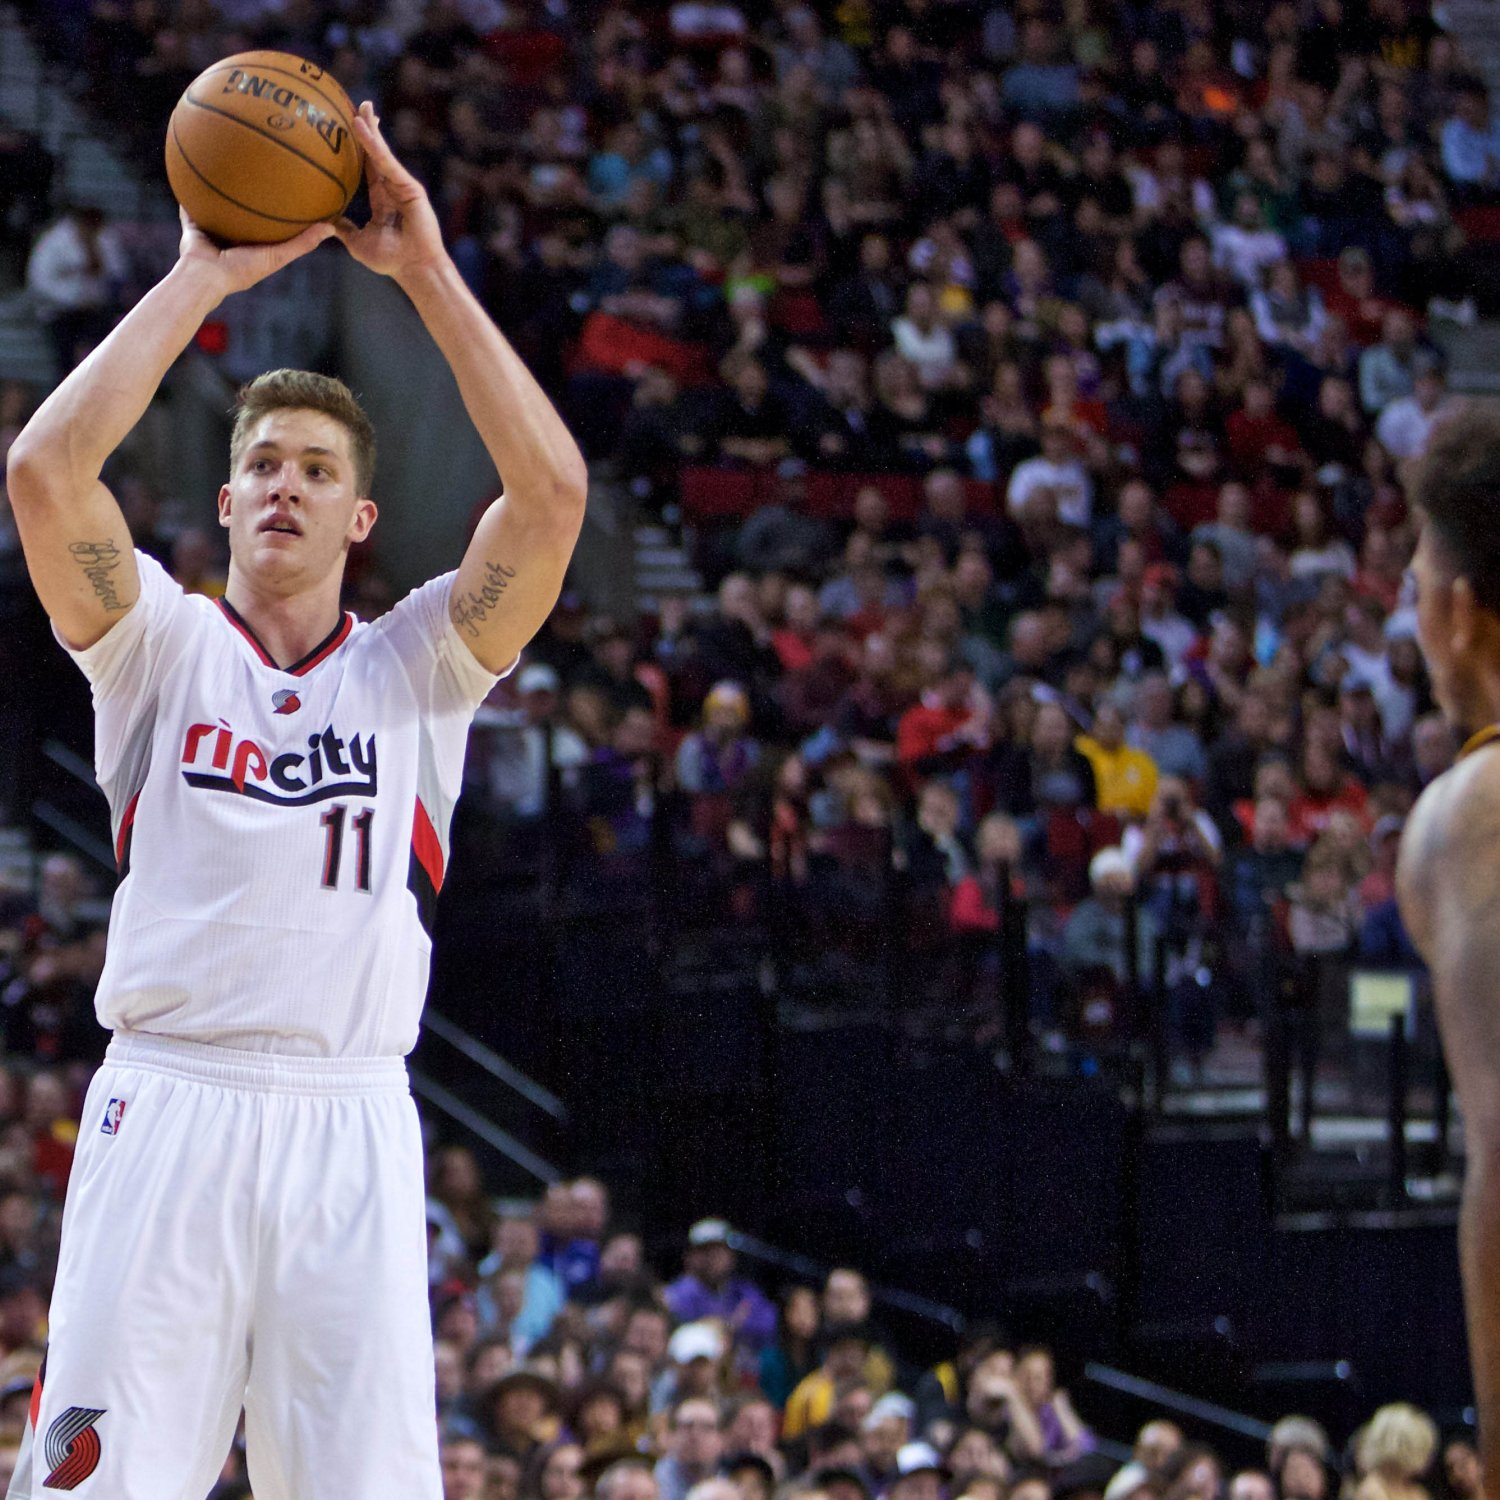 Portland Blazers Game Score: Lakers Vs. Trail Blazers: Score, Video Highlights And